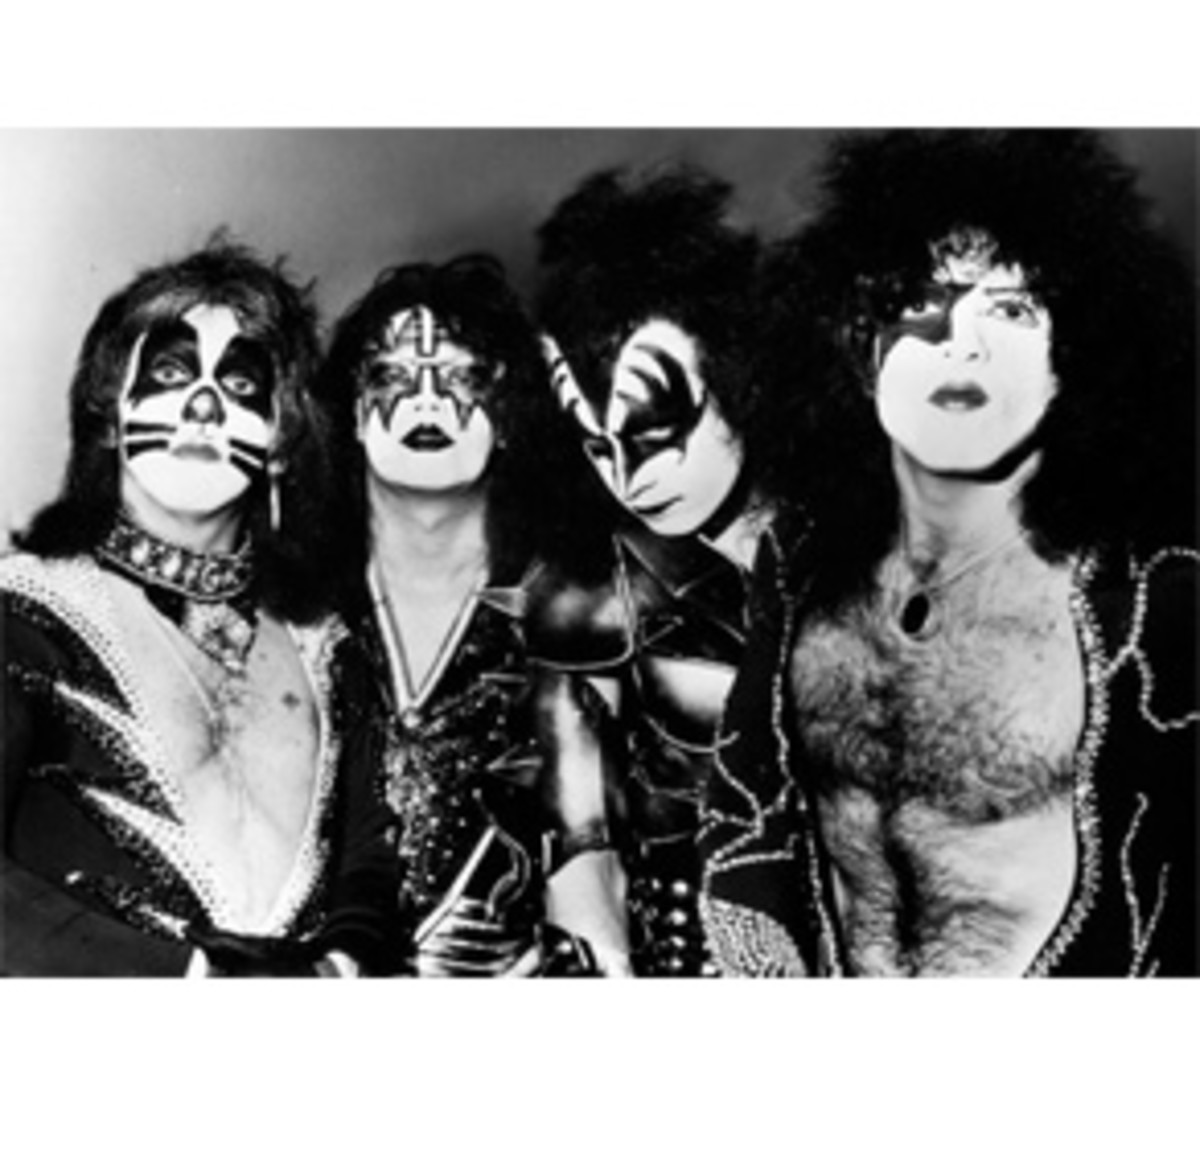 KISS. Courtesy Rock And Roll Hall of Fame.